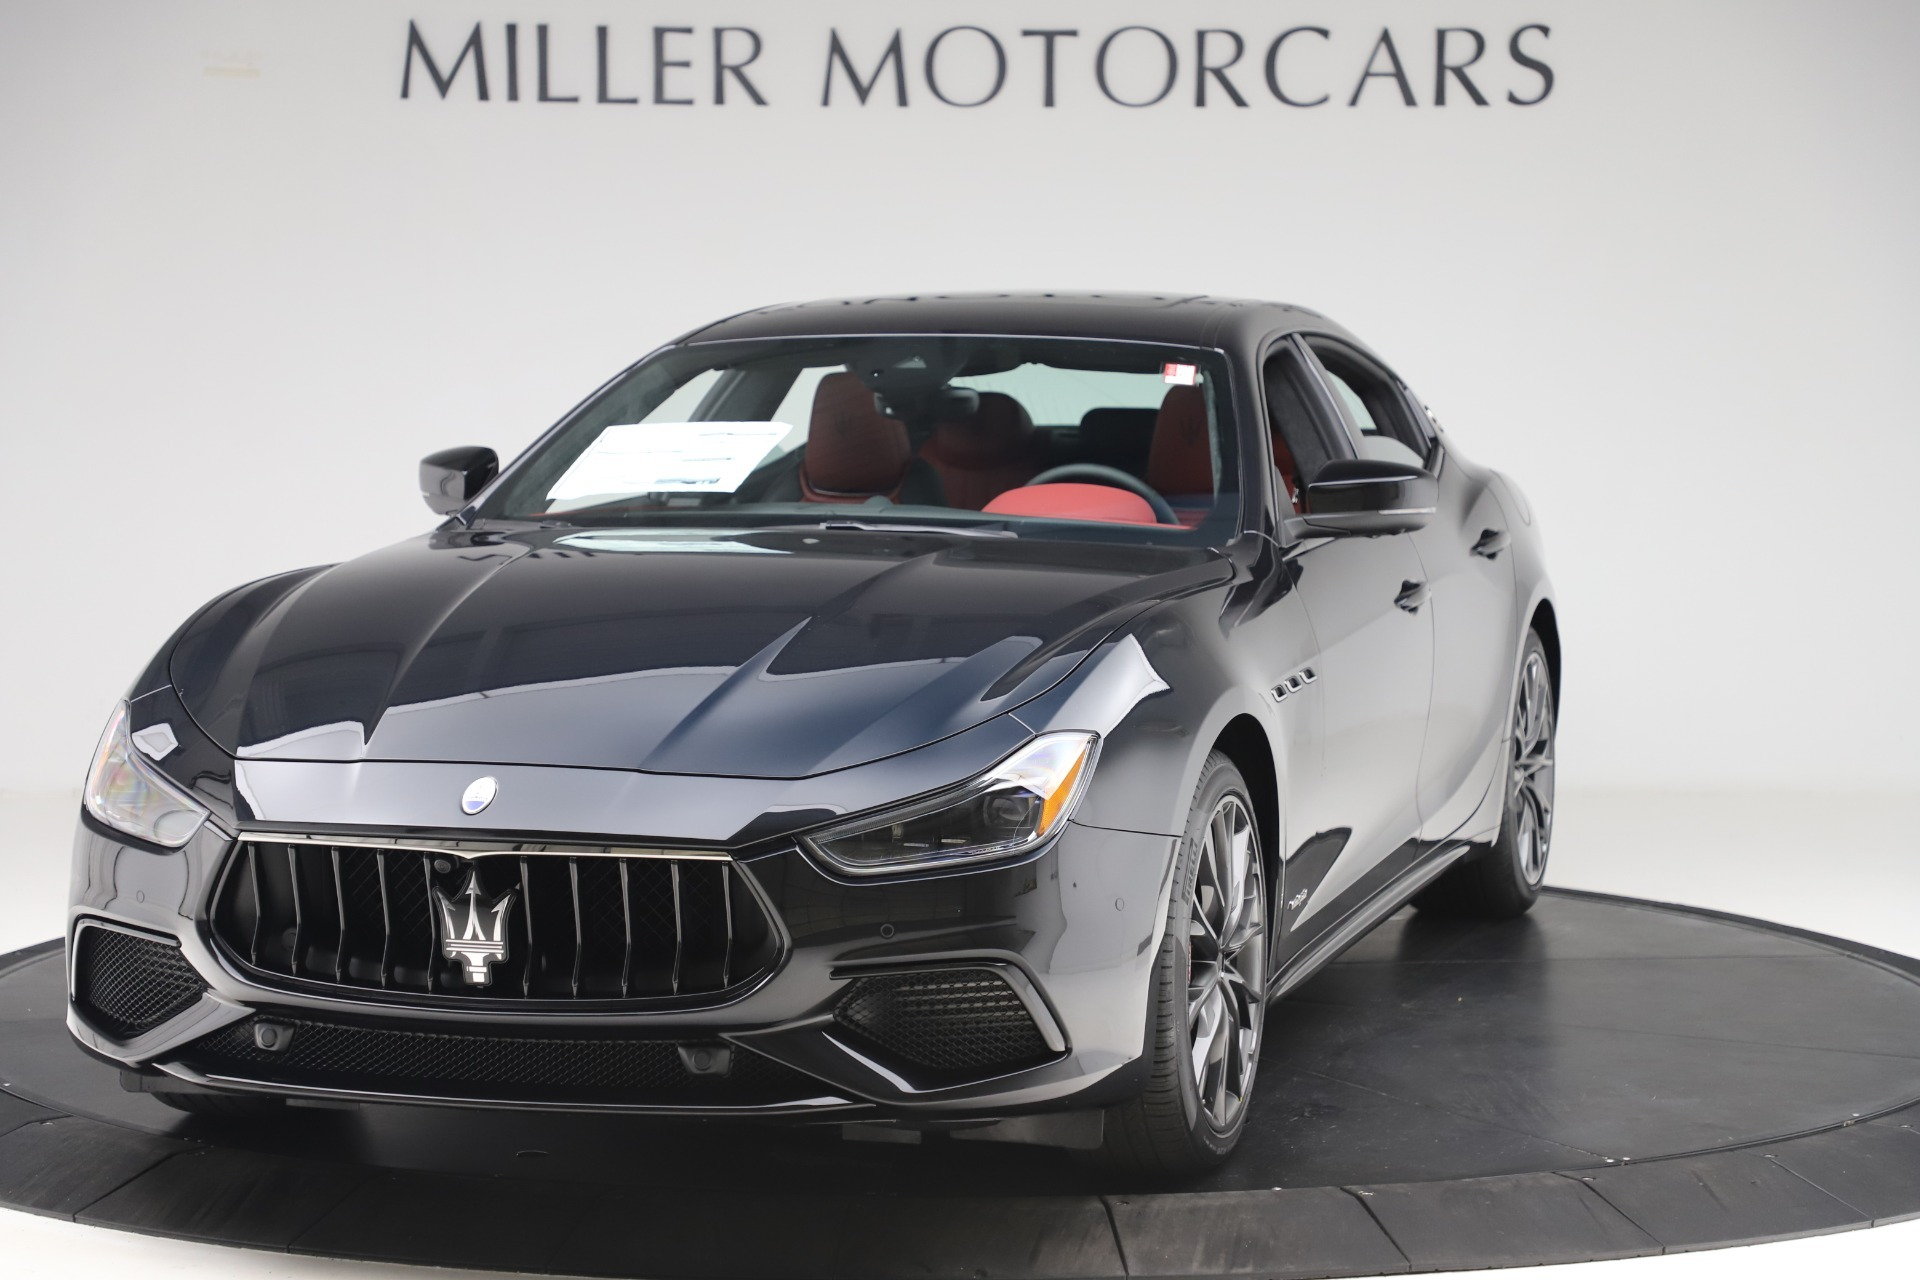 New 2020 Maserati Ghibli S Q4 GranSport for sale Sold at Pagani of Greenwich in Greenwich CT 06830 1